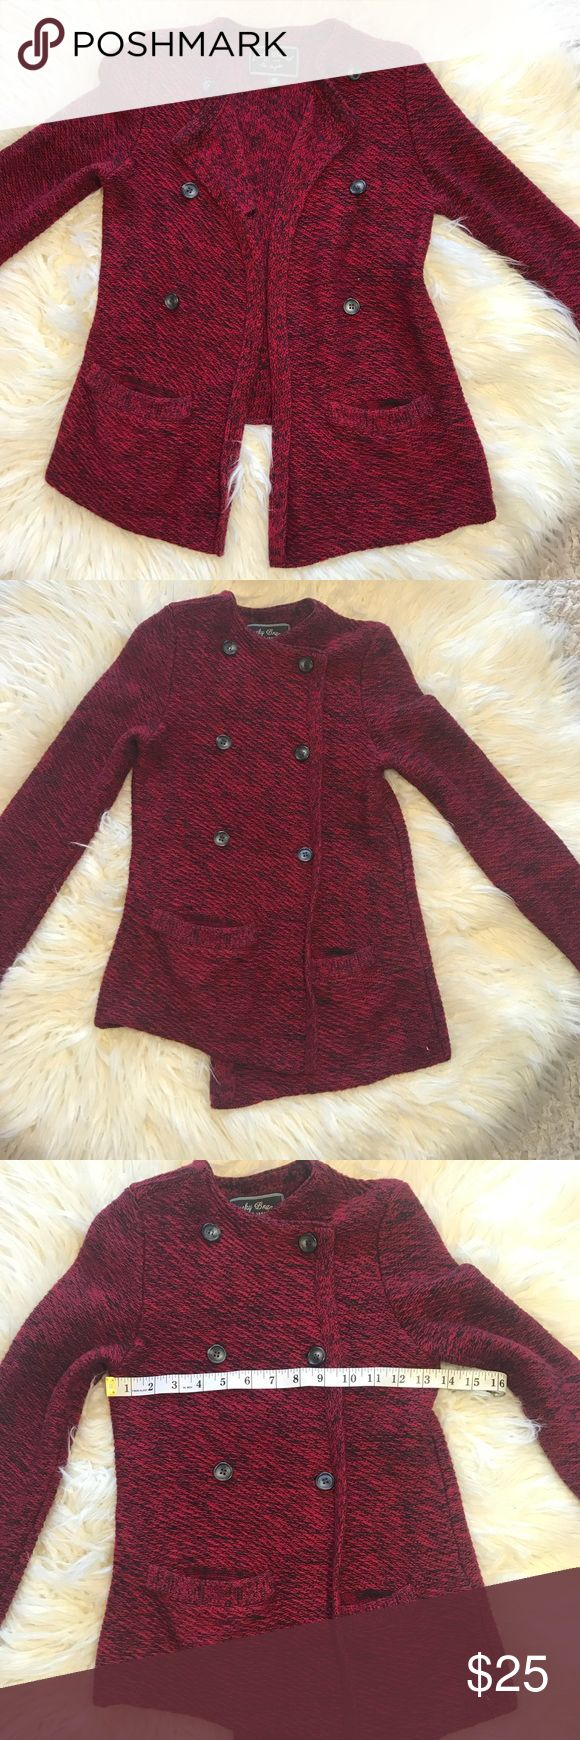 Lucky brand women's sweater blazer size xs Gently used sweater. No stains, no holes, minor peeling due to material. Style 7w51152. Sensor and extra buttons attached. This is NOT an outlet item. Stock#39 Lucky Brand Sweaters Cardigans